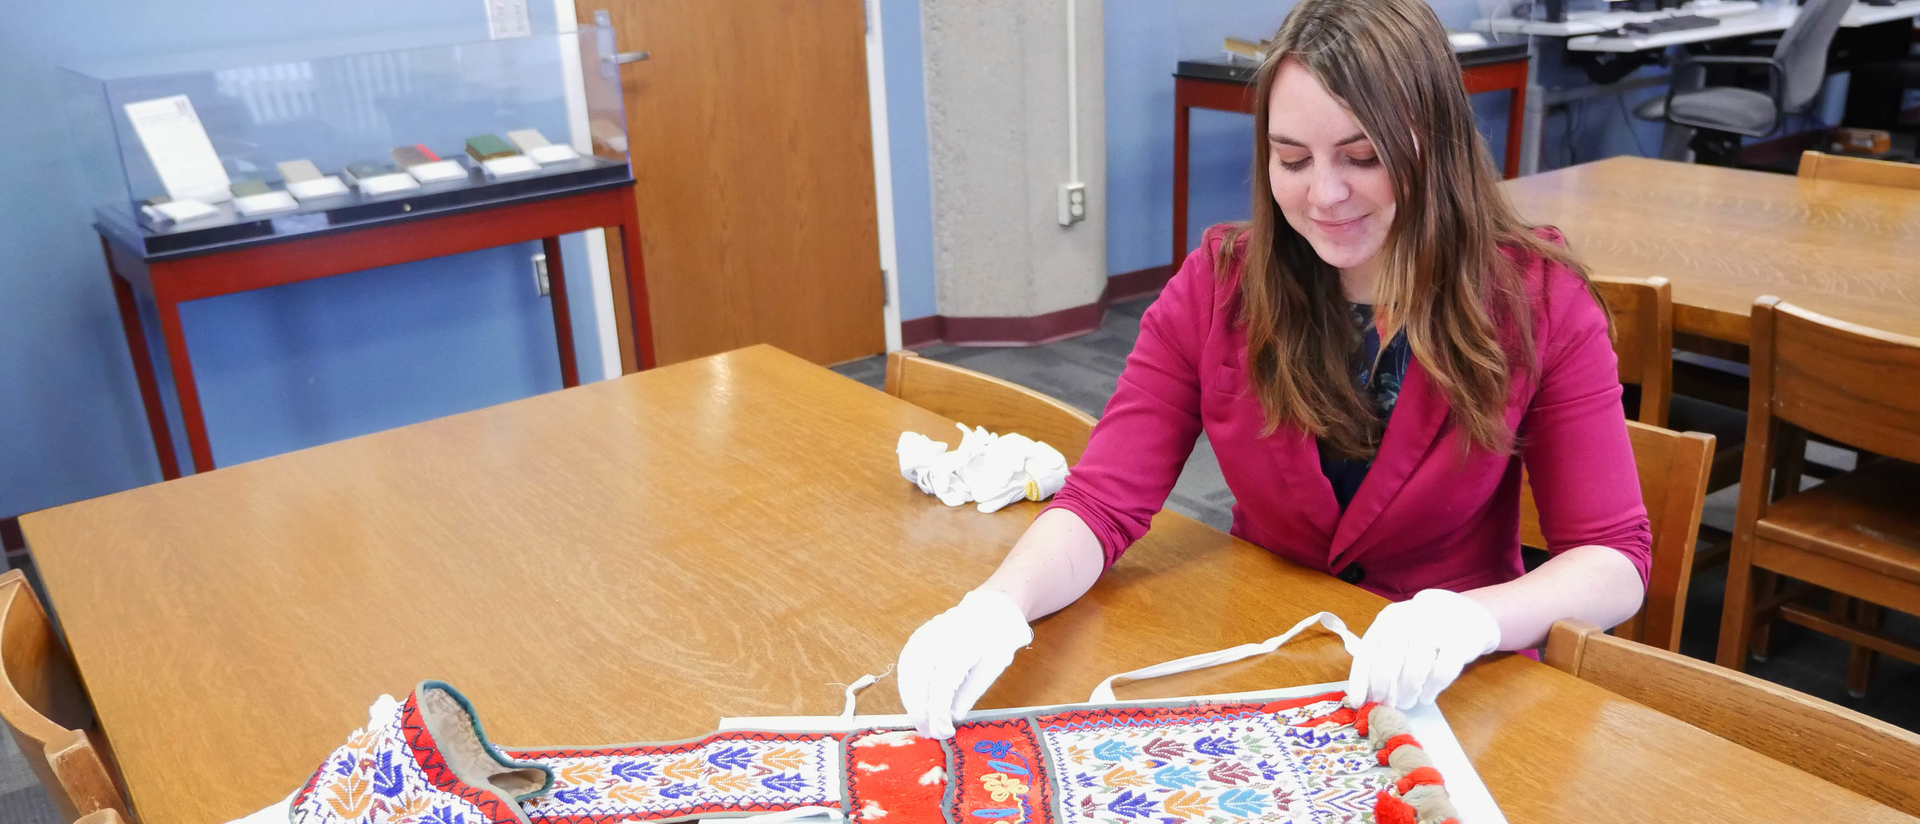 Shelby Miller in special collections working with Indian artifacts.